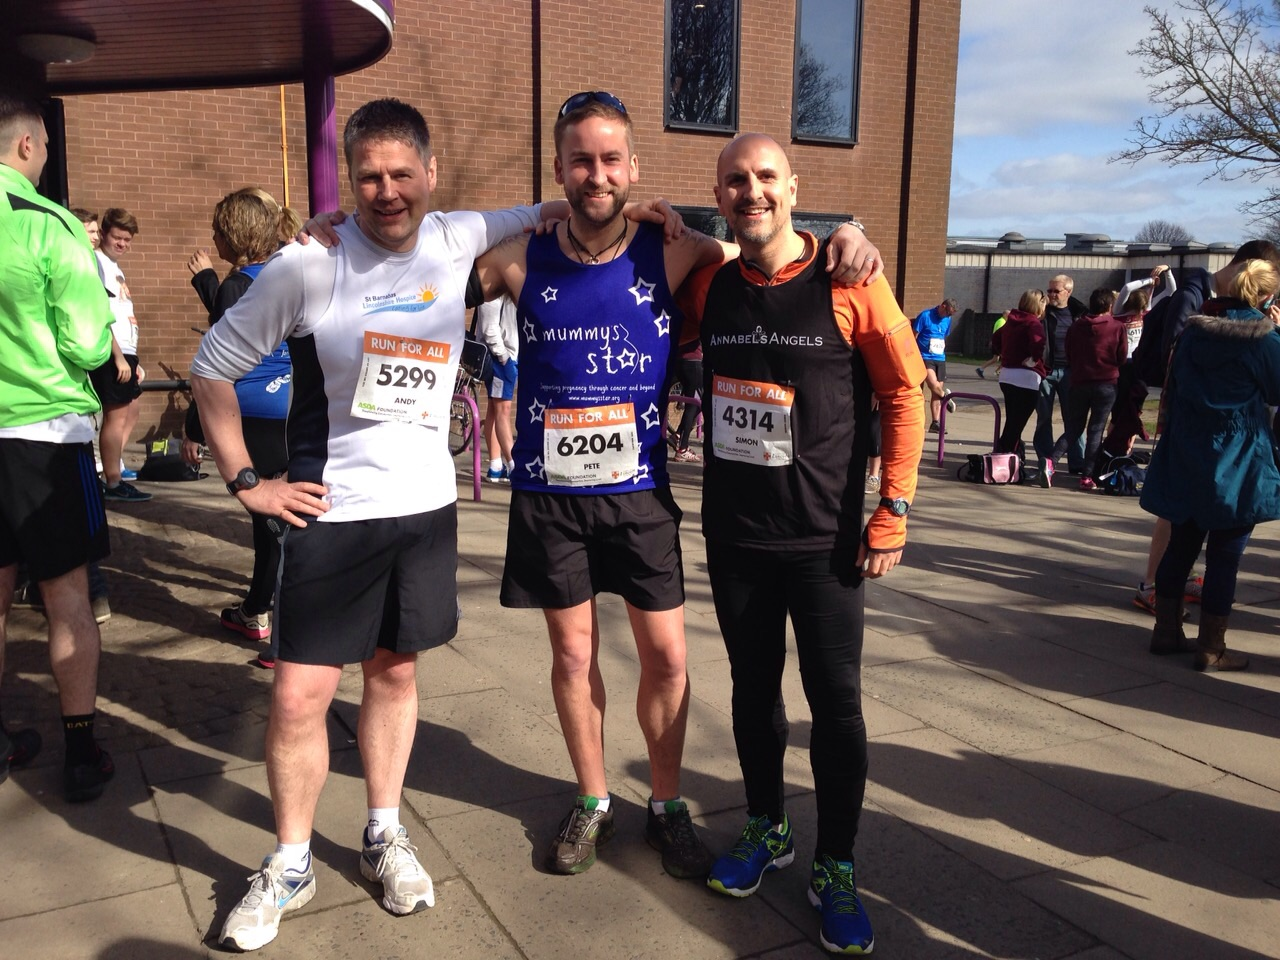 Lincoln 10k 2015 pre race photo Andy King, Pete Wallroth, Simon Hancox.jpg